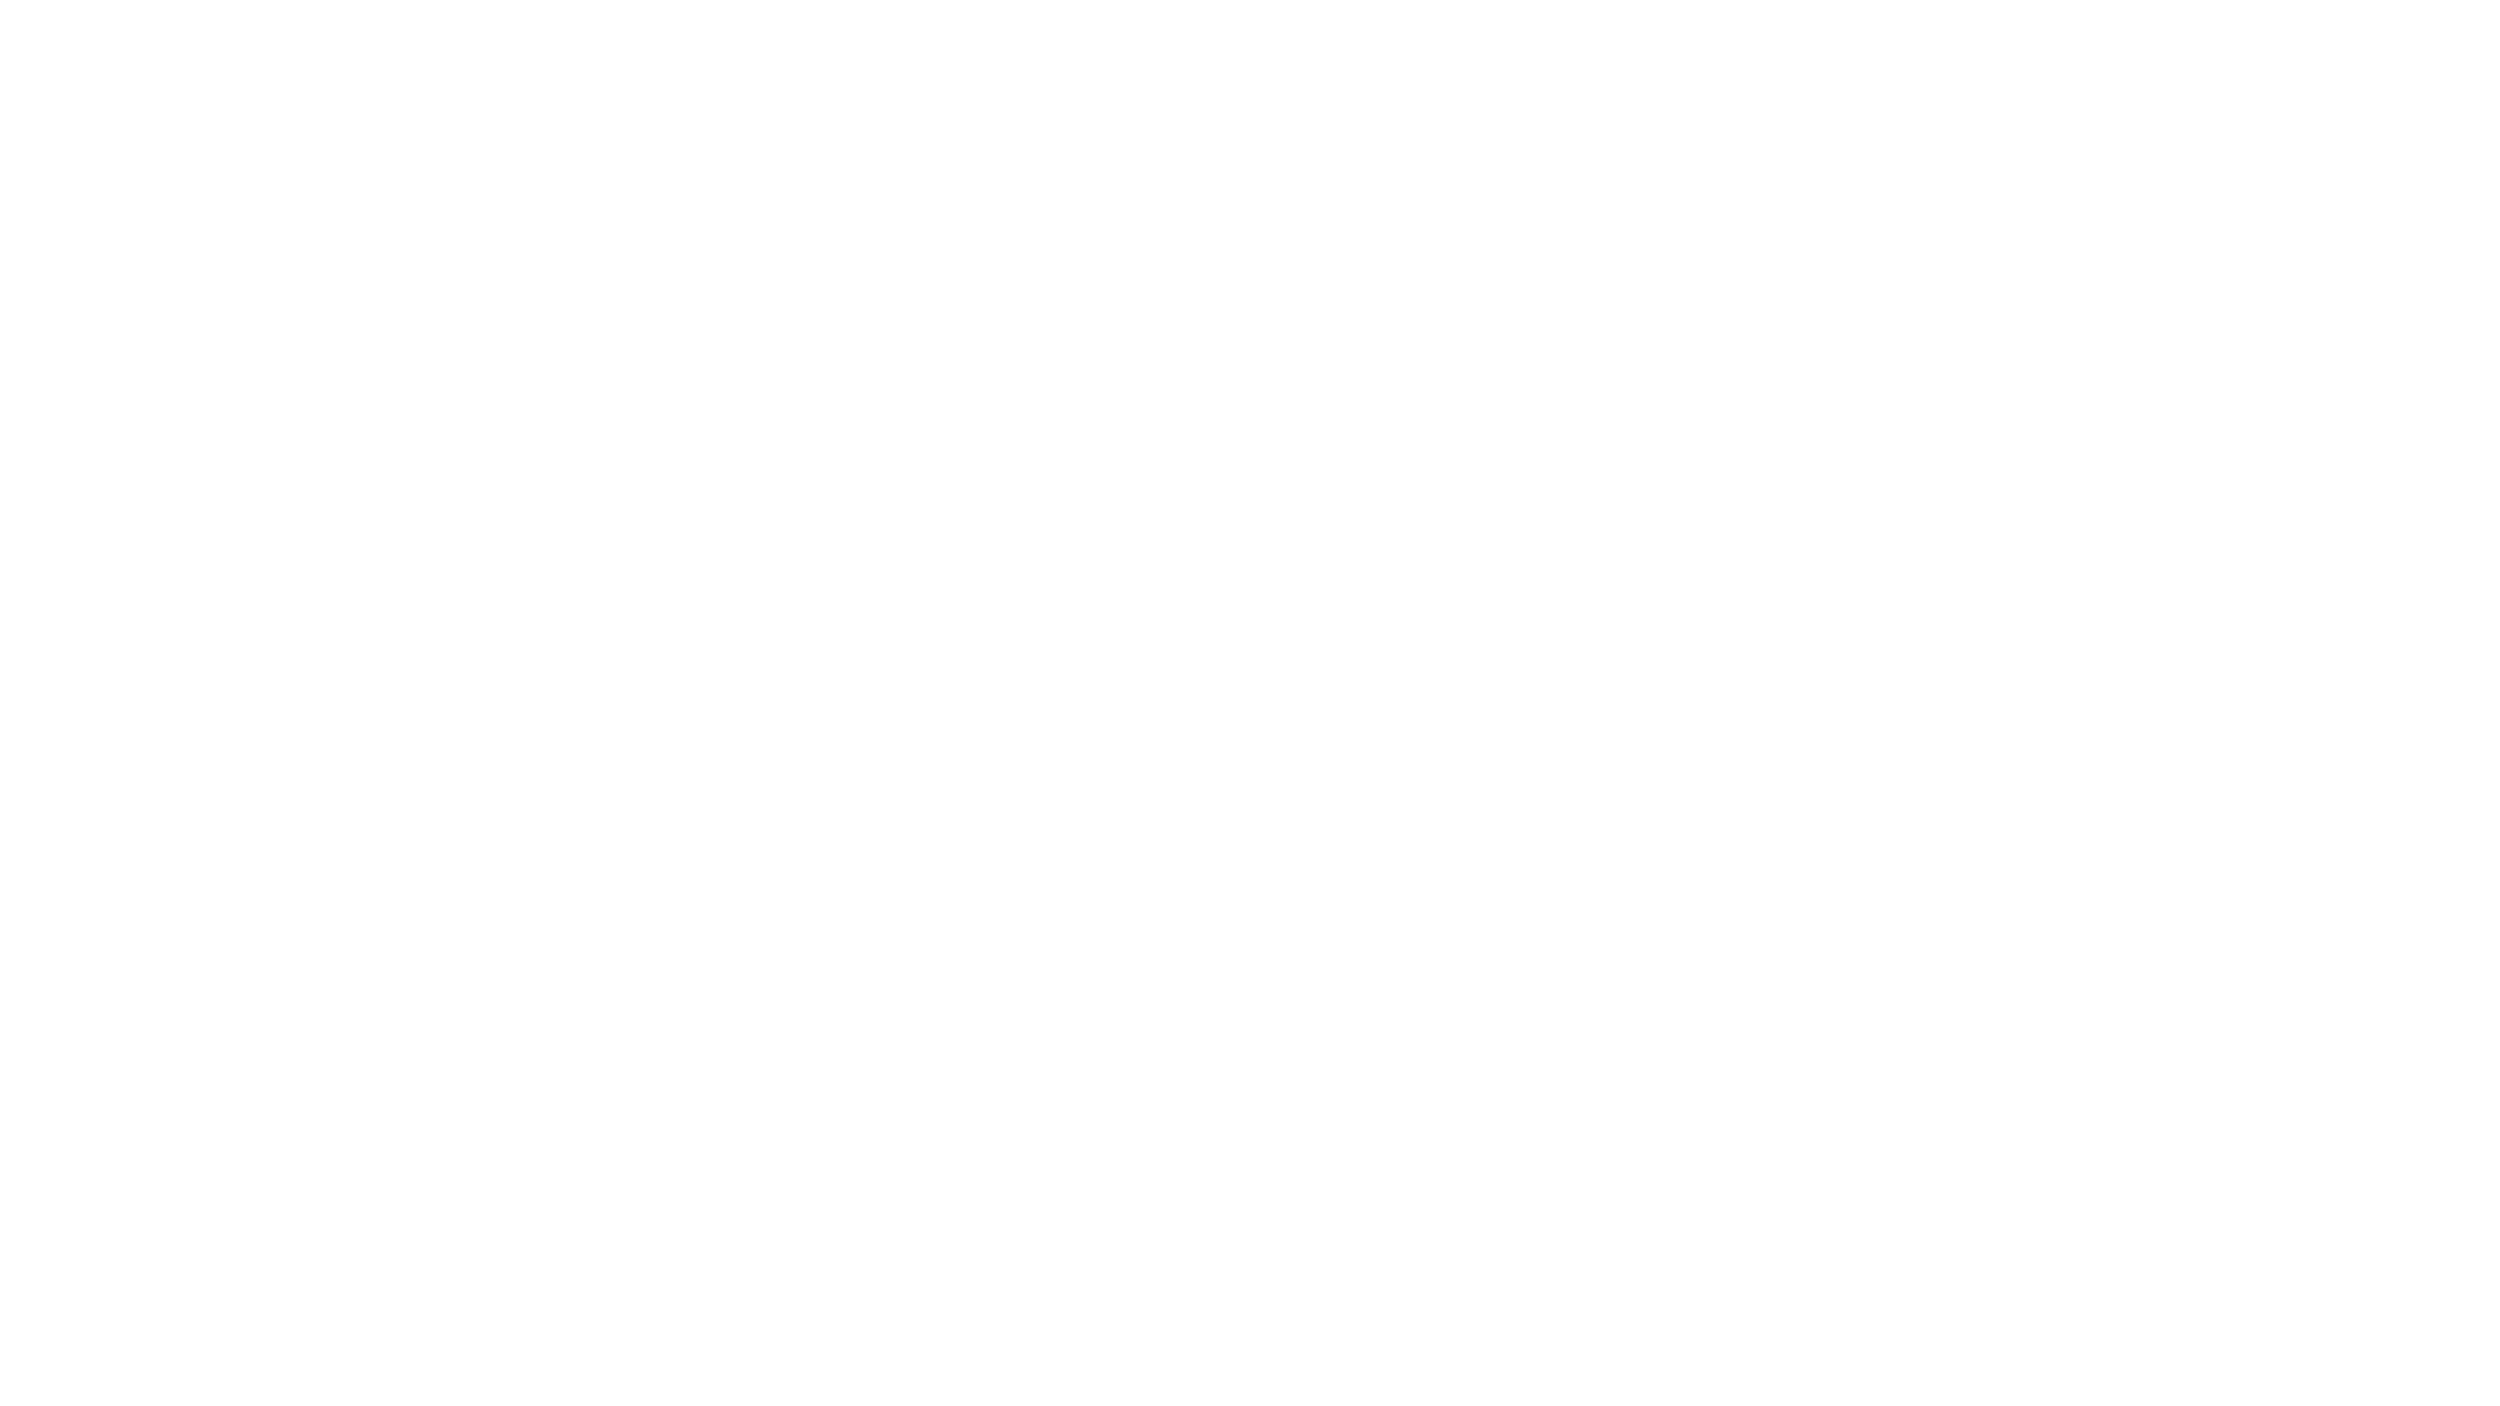 Becoming Coherent